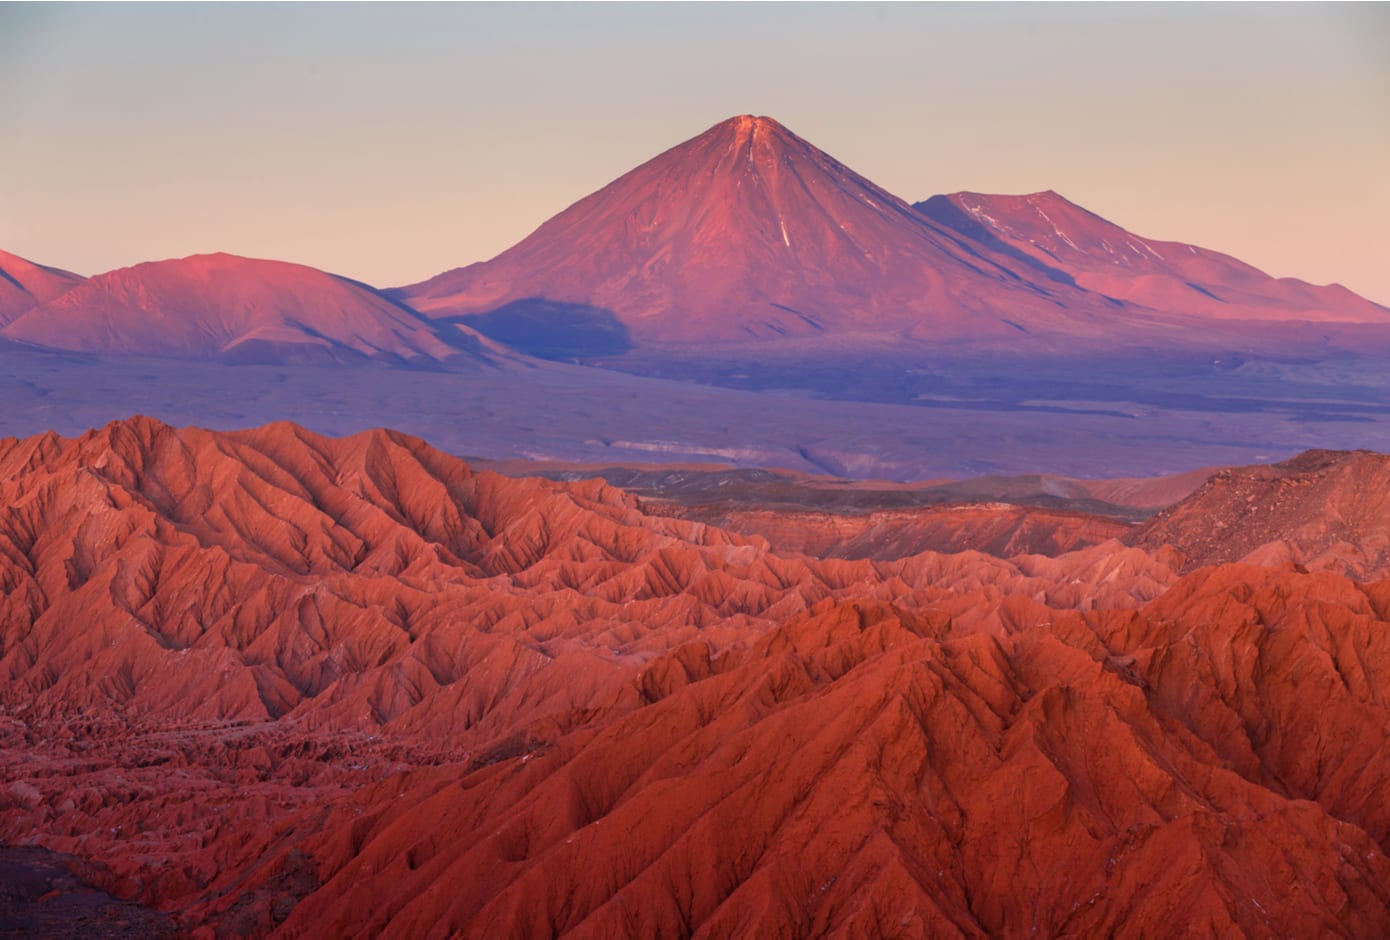 The pink hued rock formations at the Atacama Desert, in Chile.